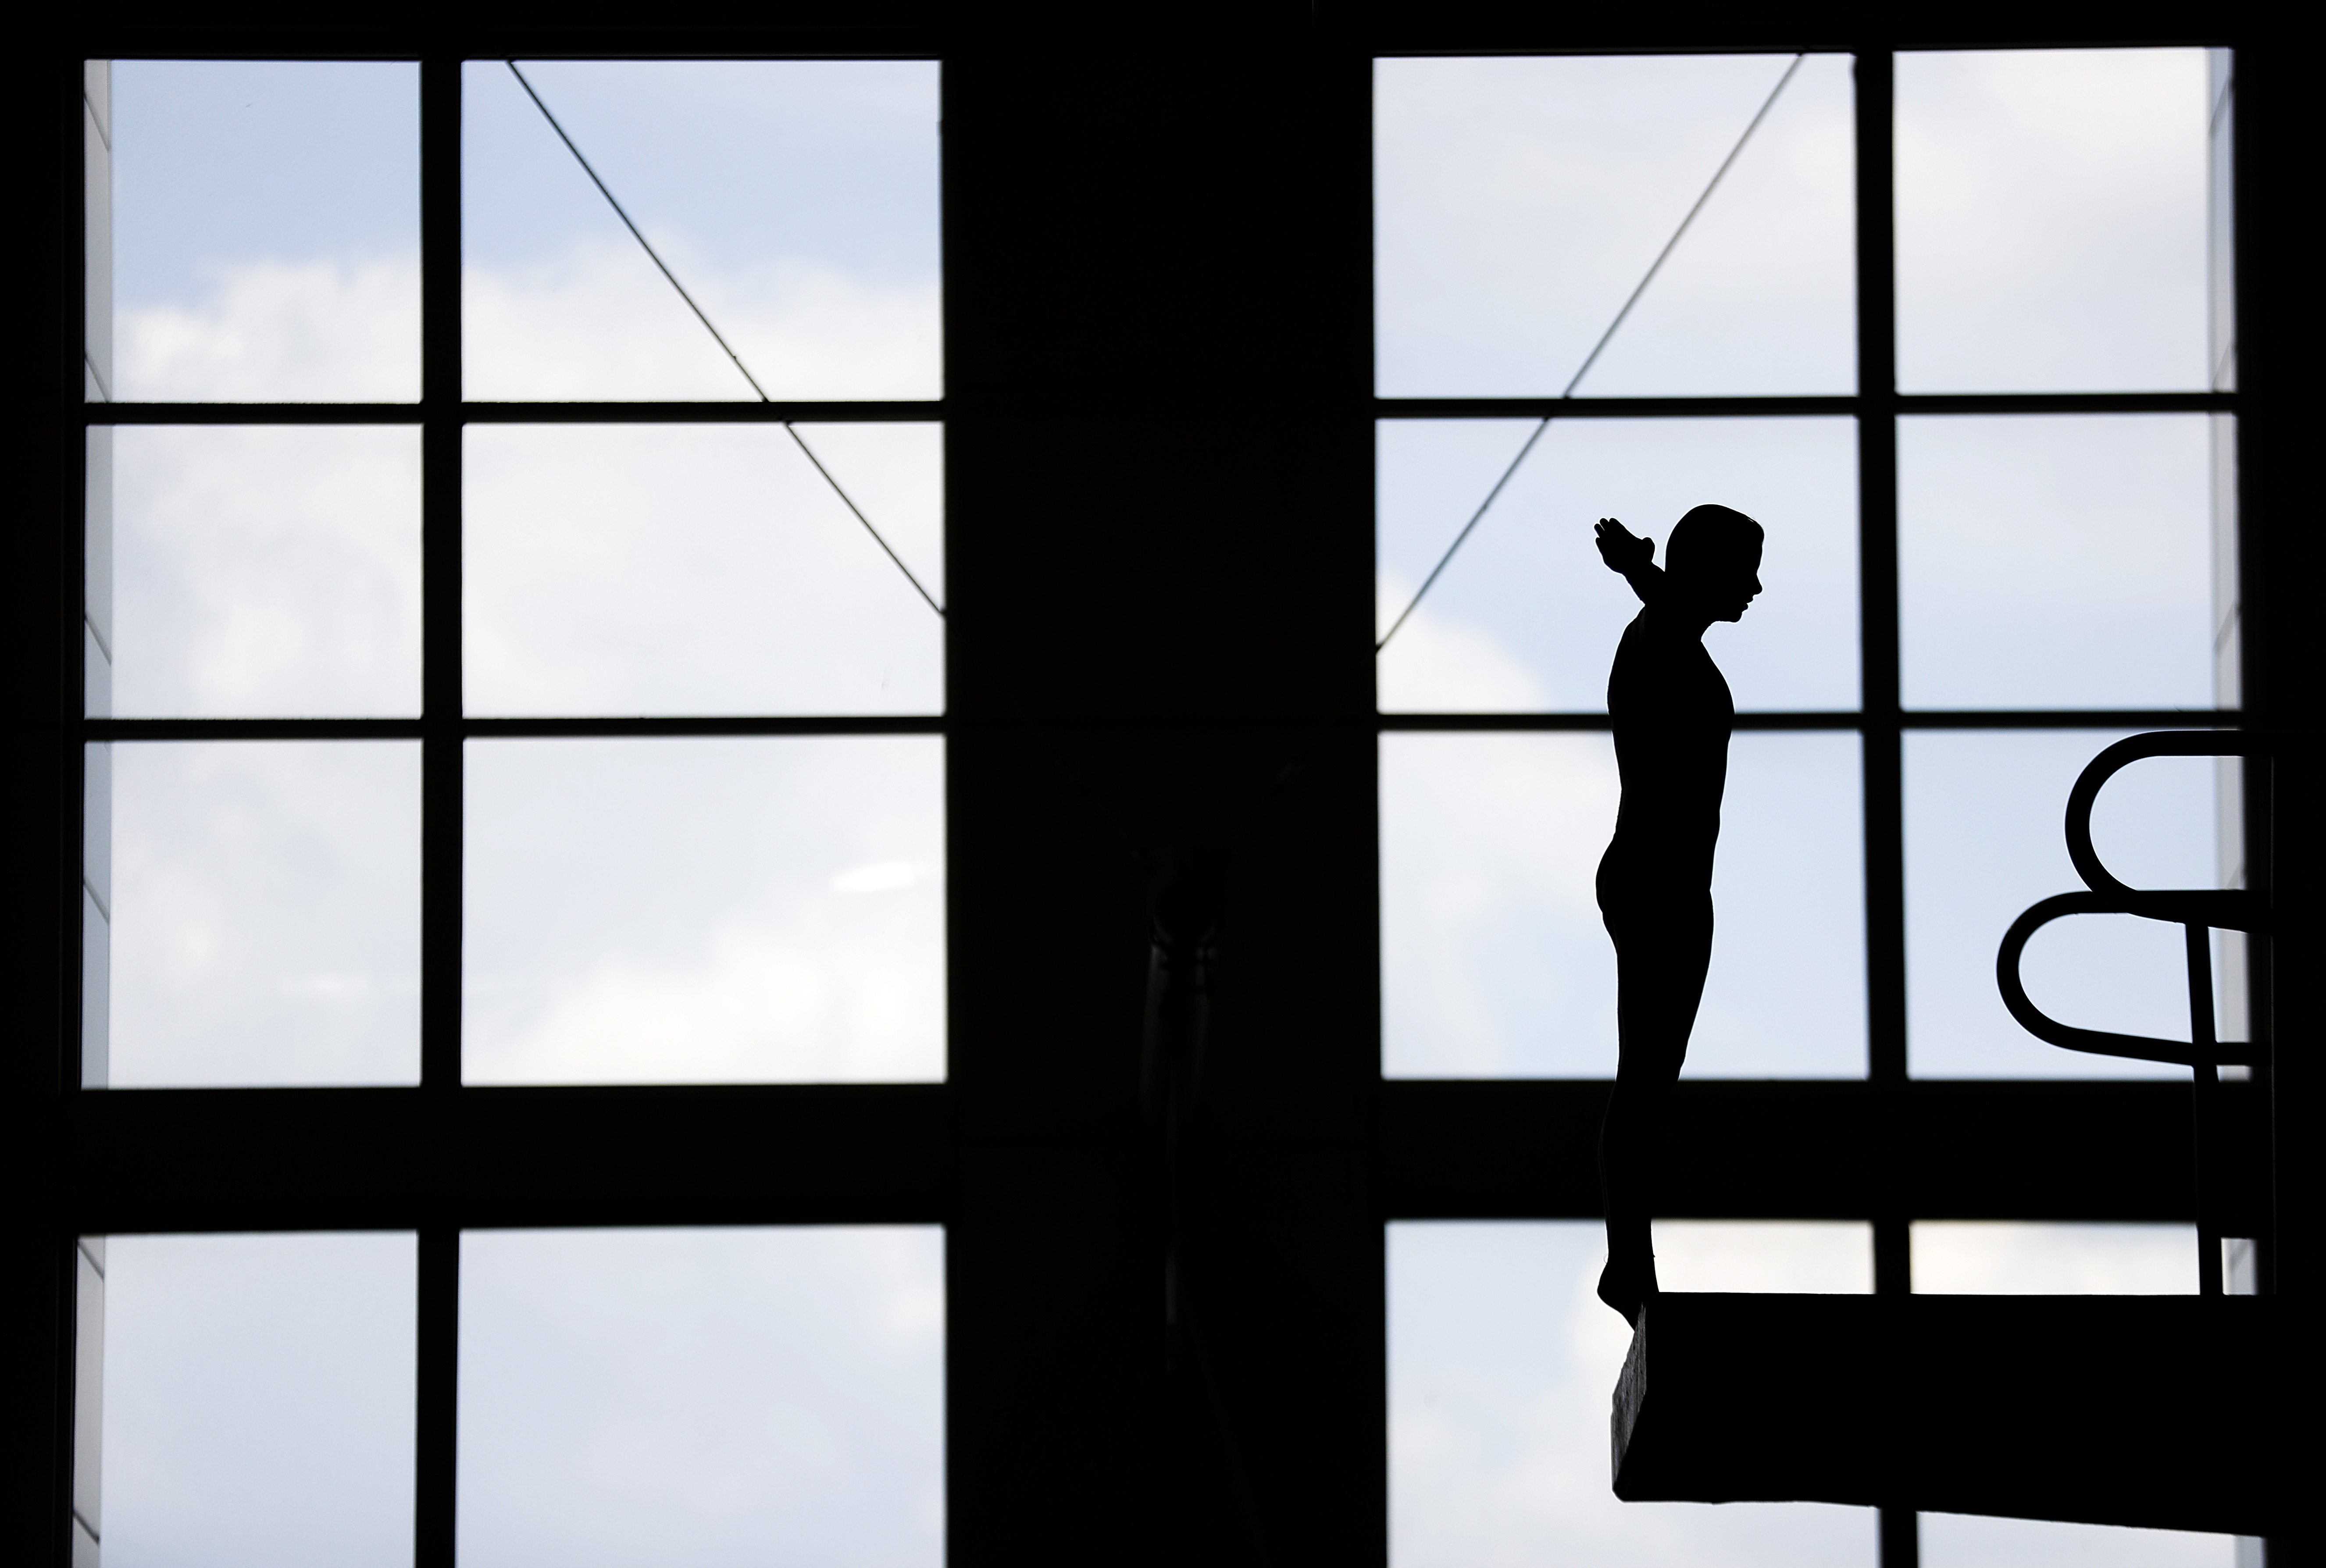 In this Friday, April 14, 2017 photo, Tarrin Gilliland takes a practice dive during the U.S. Diving Synchronized National Championships at Georgia Tech in Atlanta. These days, the pool deck seems a little empty for the U.S. diving team as David Boudia, th